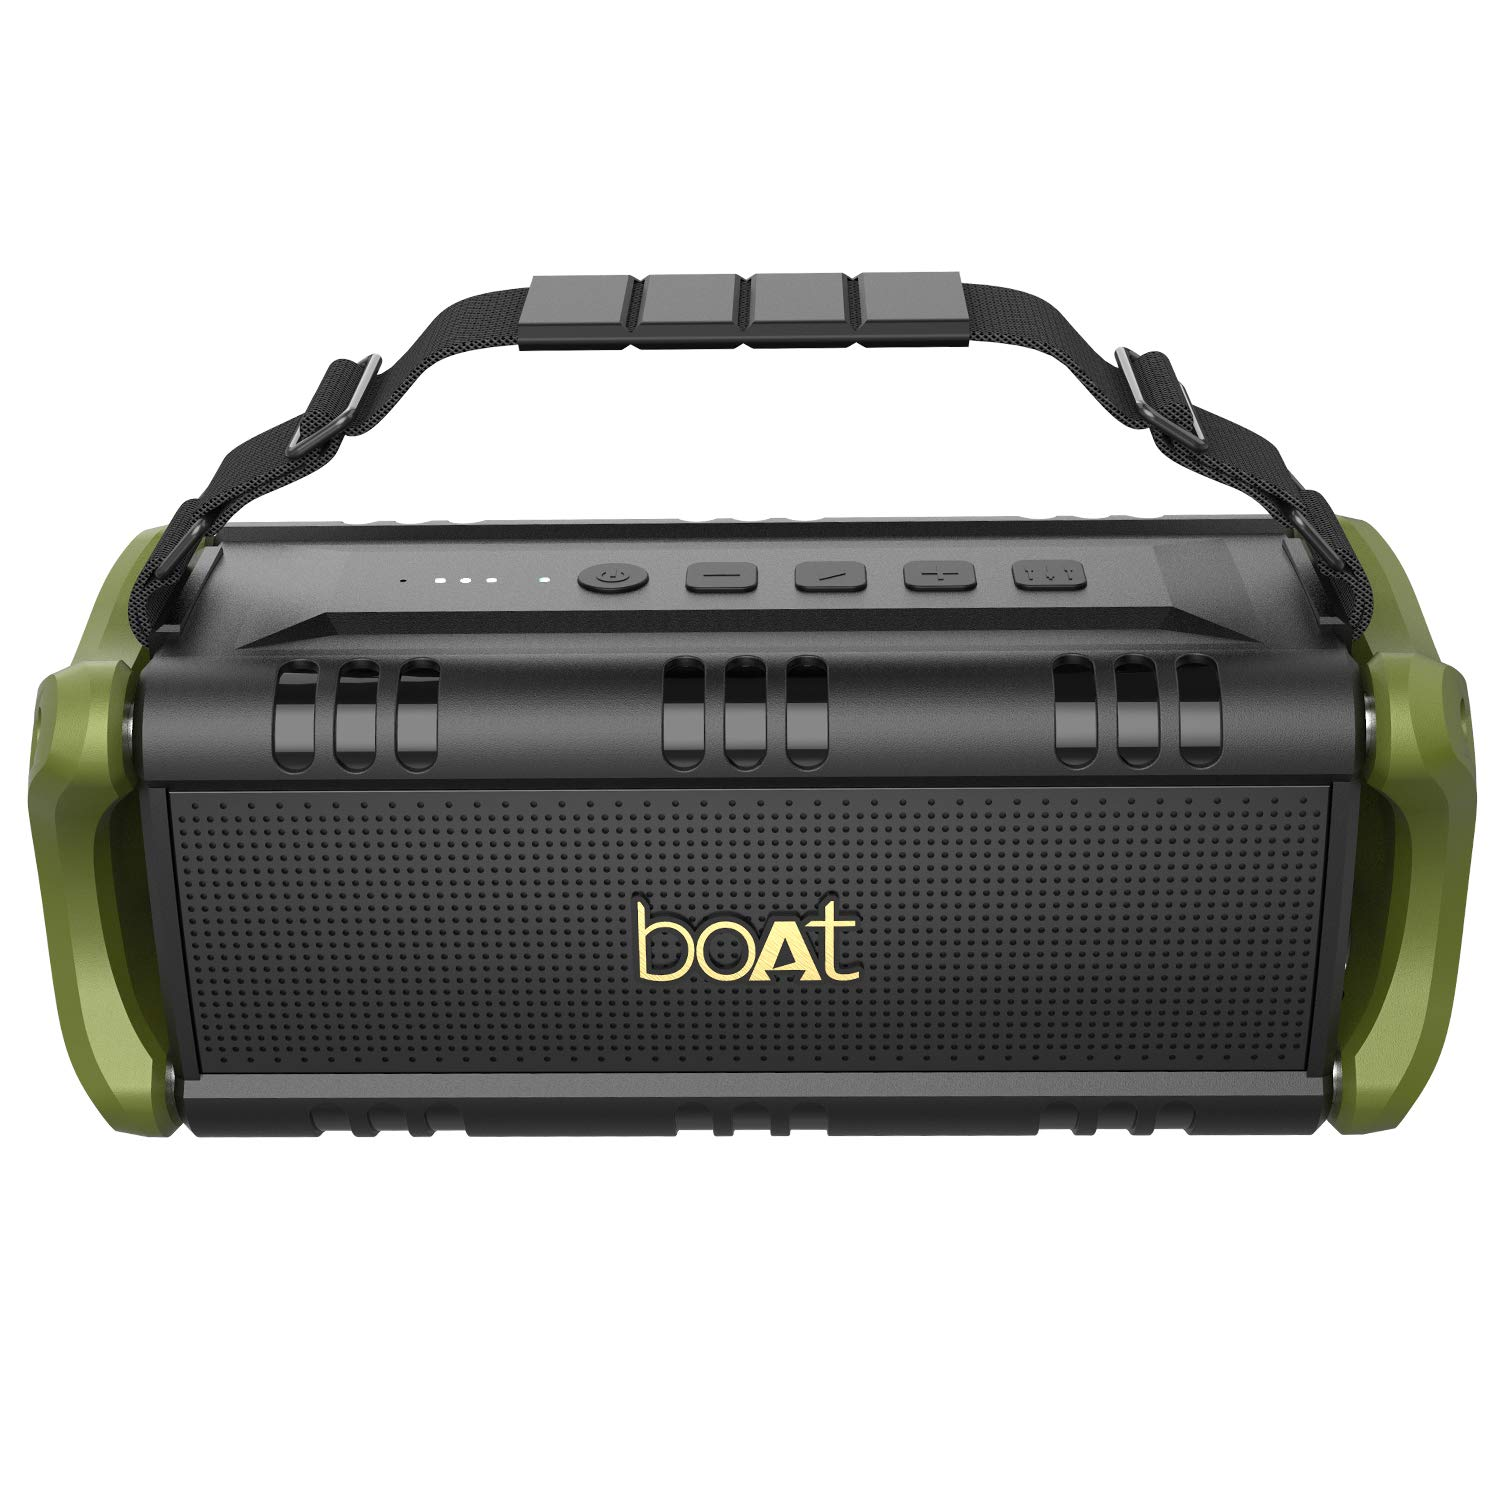 boat stone 1400 wireless portable Bluetooth speaker review